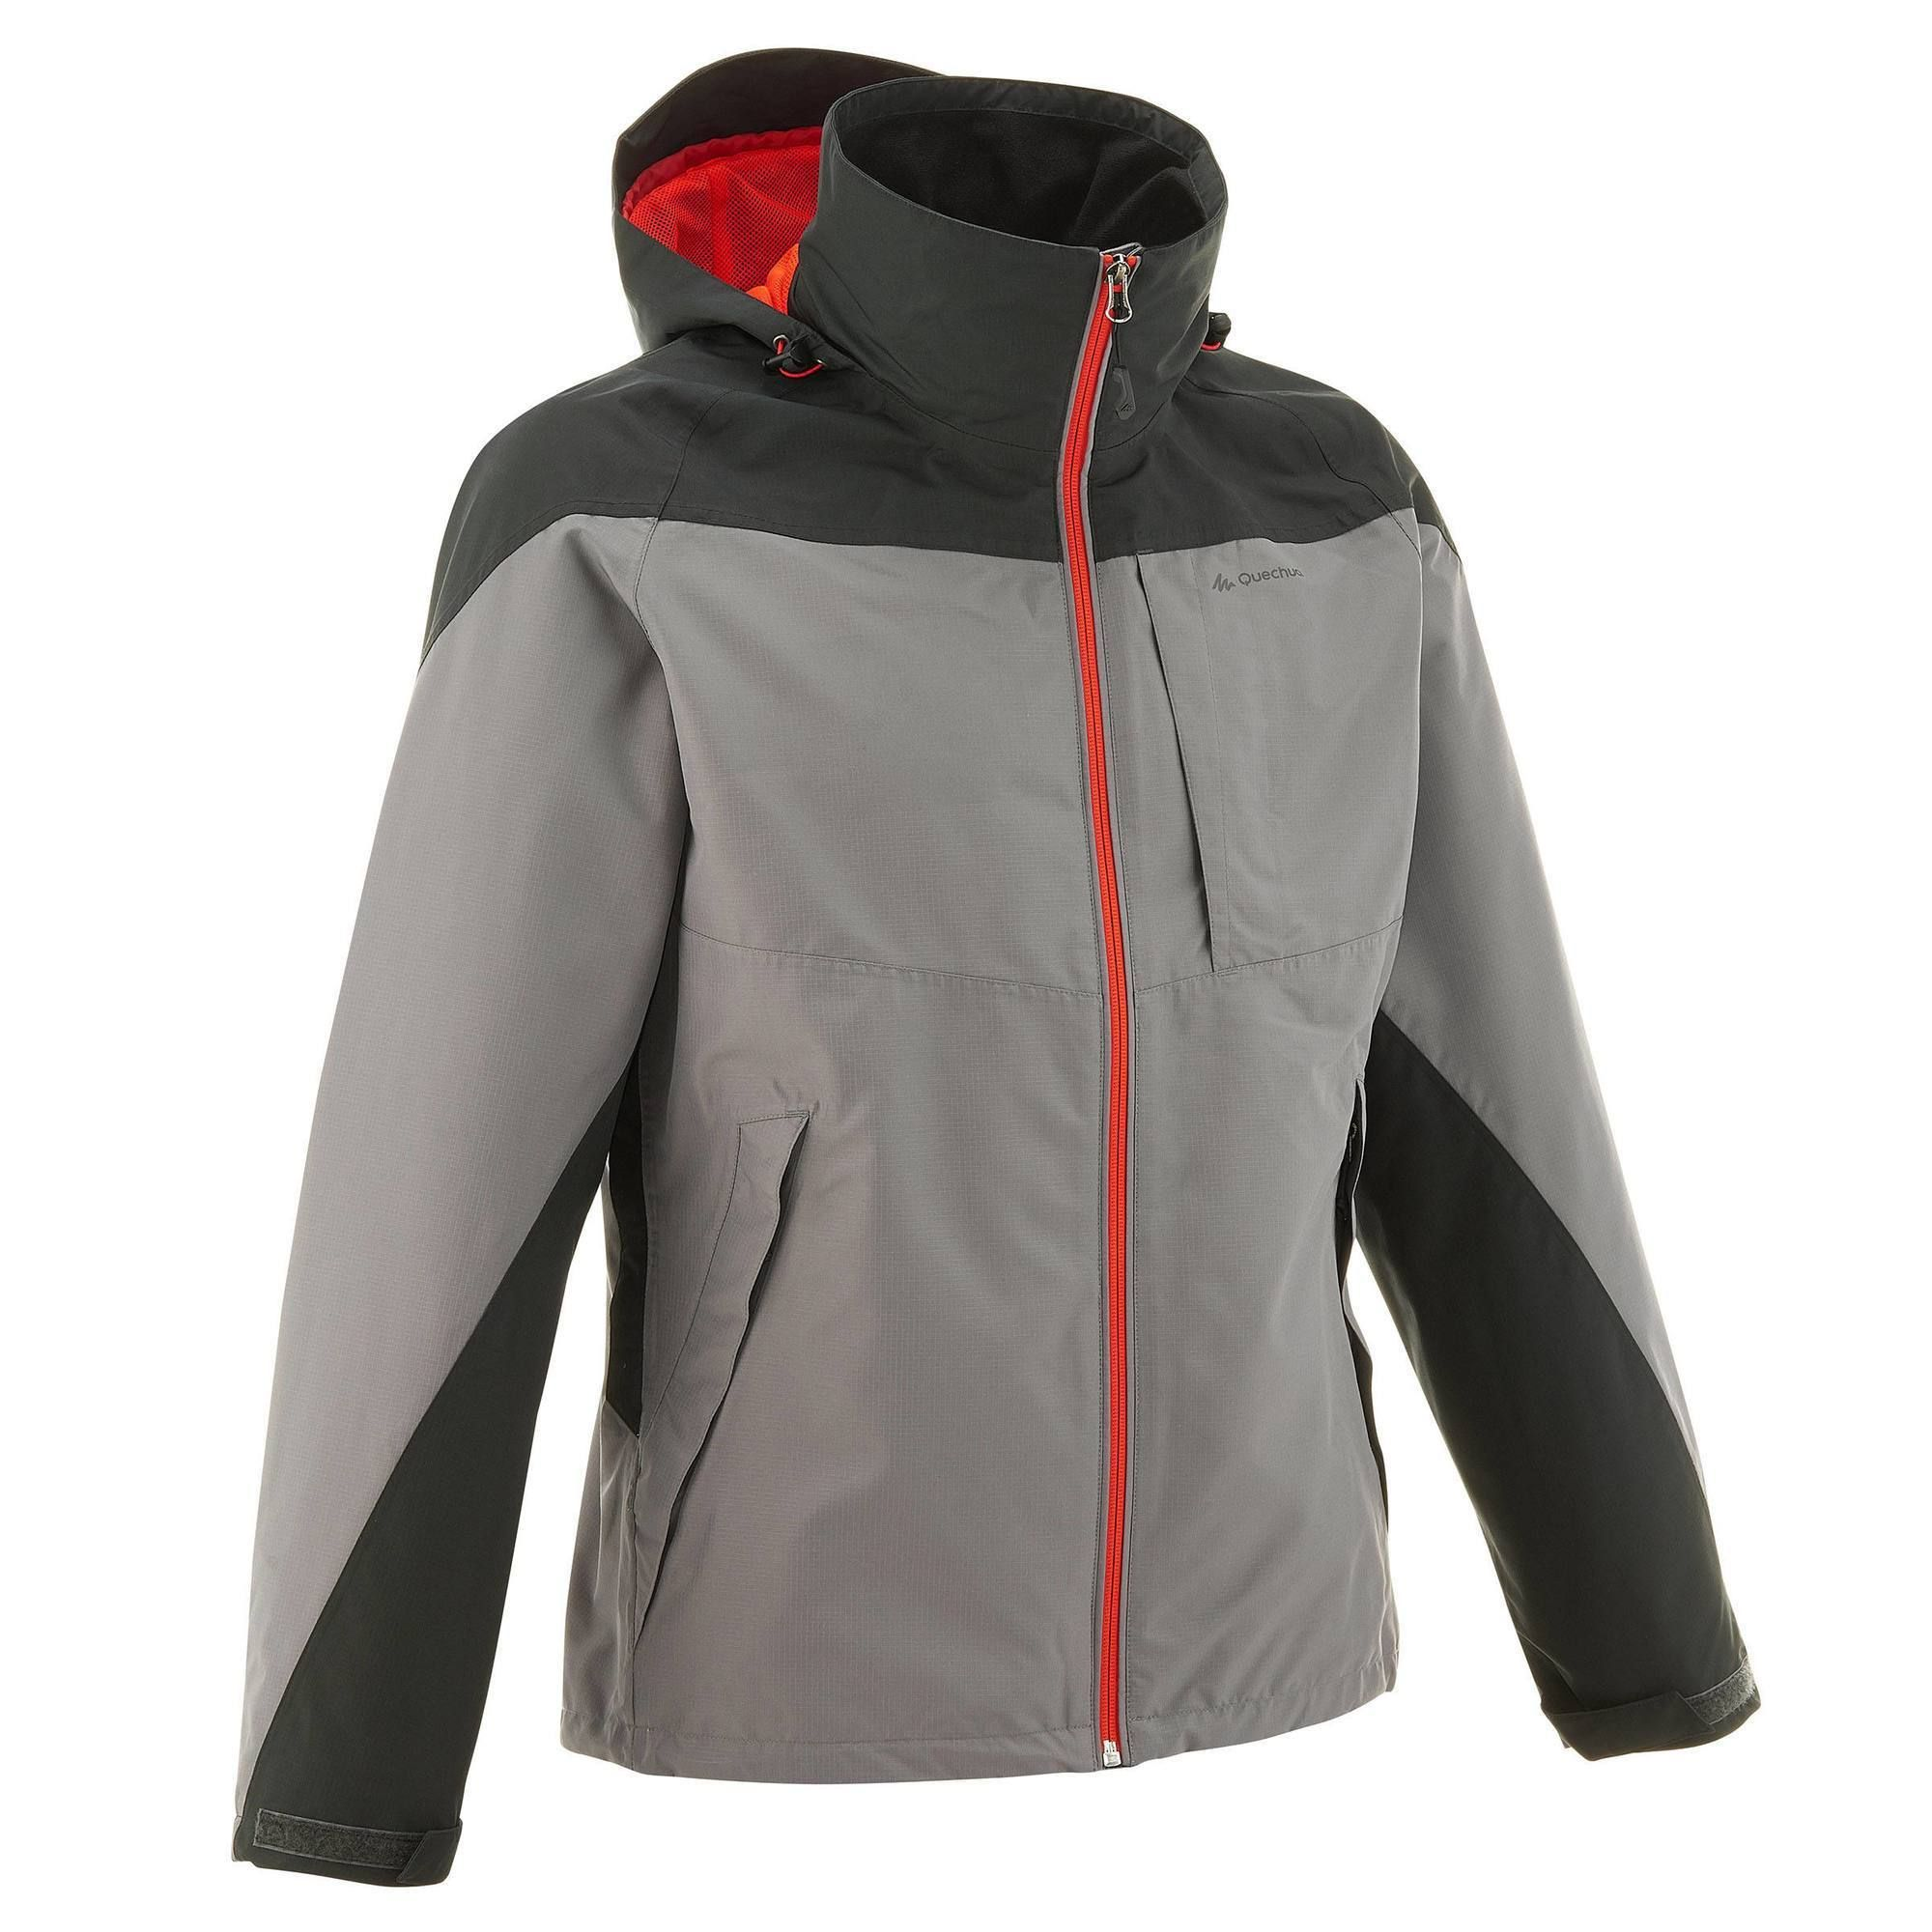 b75a6293702c Outdoor jackets at affordable prices! Visit https   www.grivetoutdoors.com